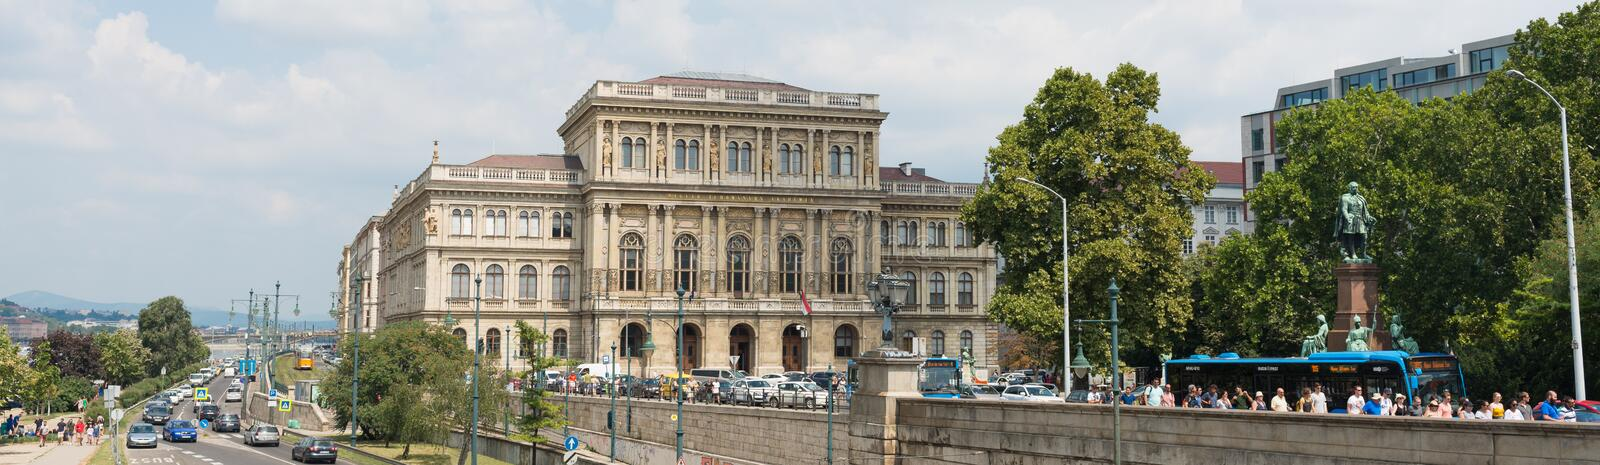 Academy of Sciences - Budapest - Hungary stock image